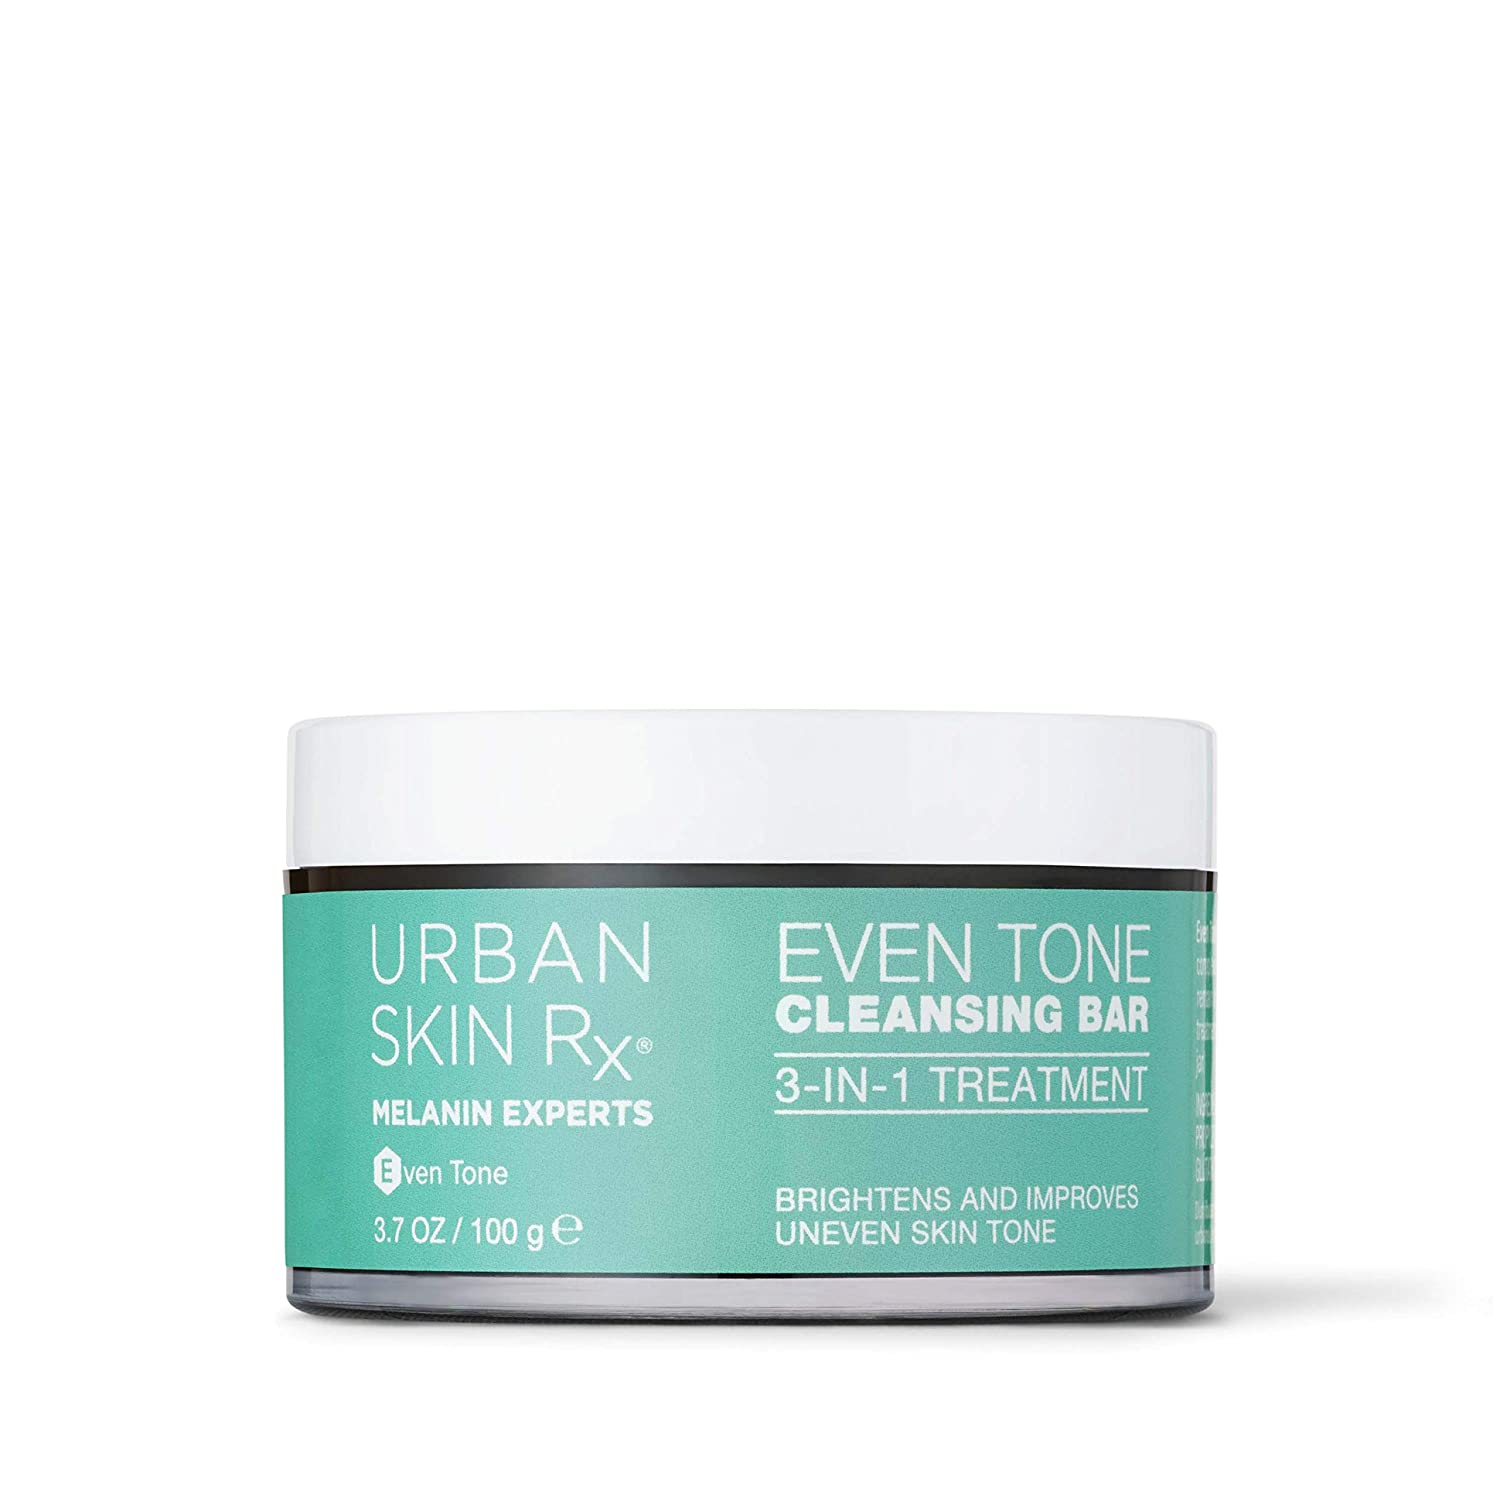 Urban Skin Rx Even Tone Cleansing Bar   3-in-1 Daily Cleanser, Exfoliator, and Brightening Mask Helps Diminish Dark Spots, Formulated with Kojic Acid, Azelaic Acid, and Niacinamide   3.7 Oz: Beauty